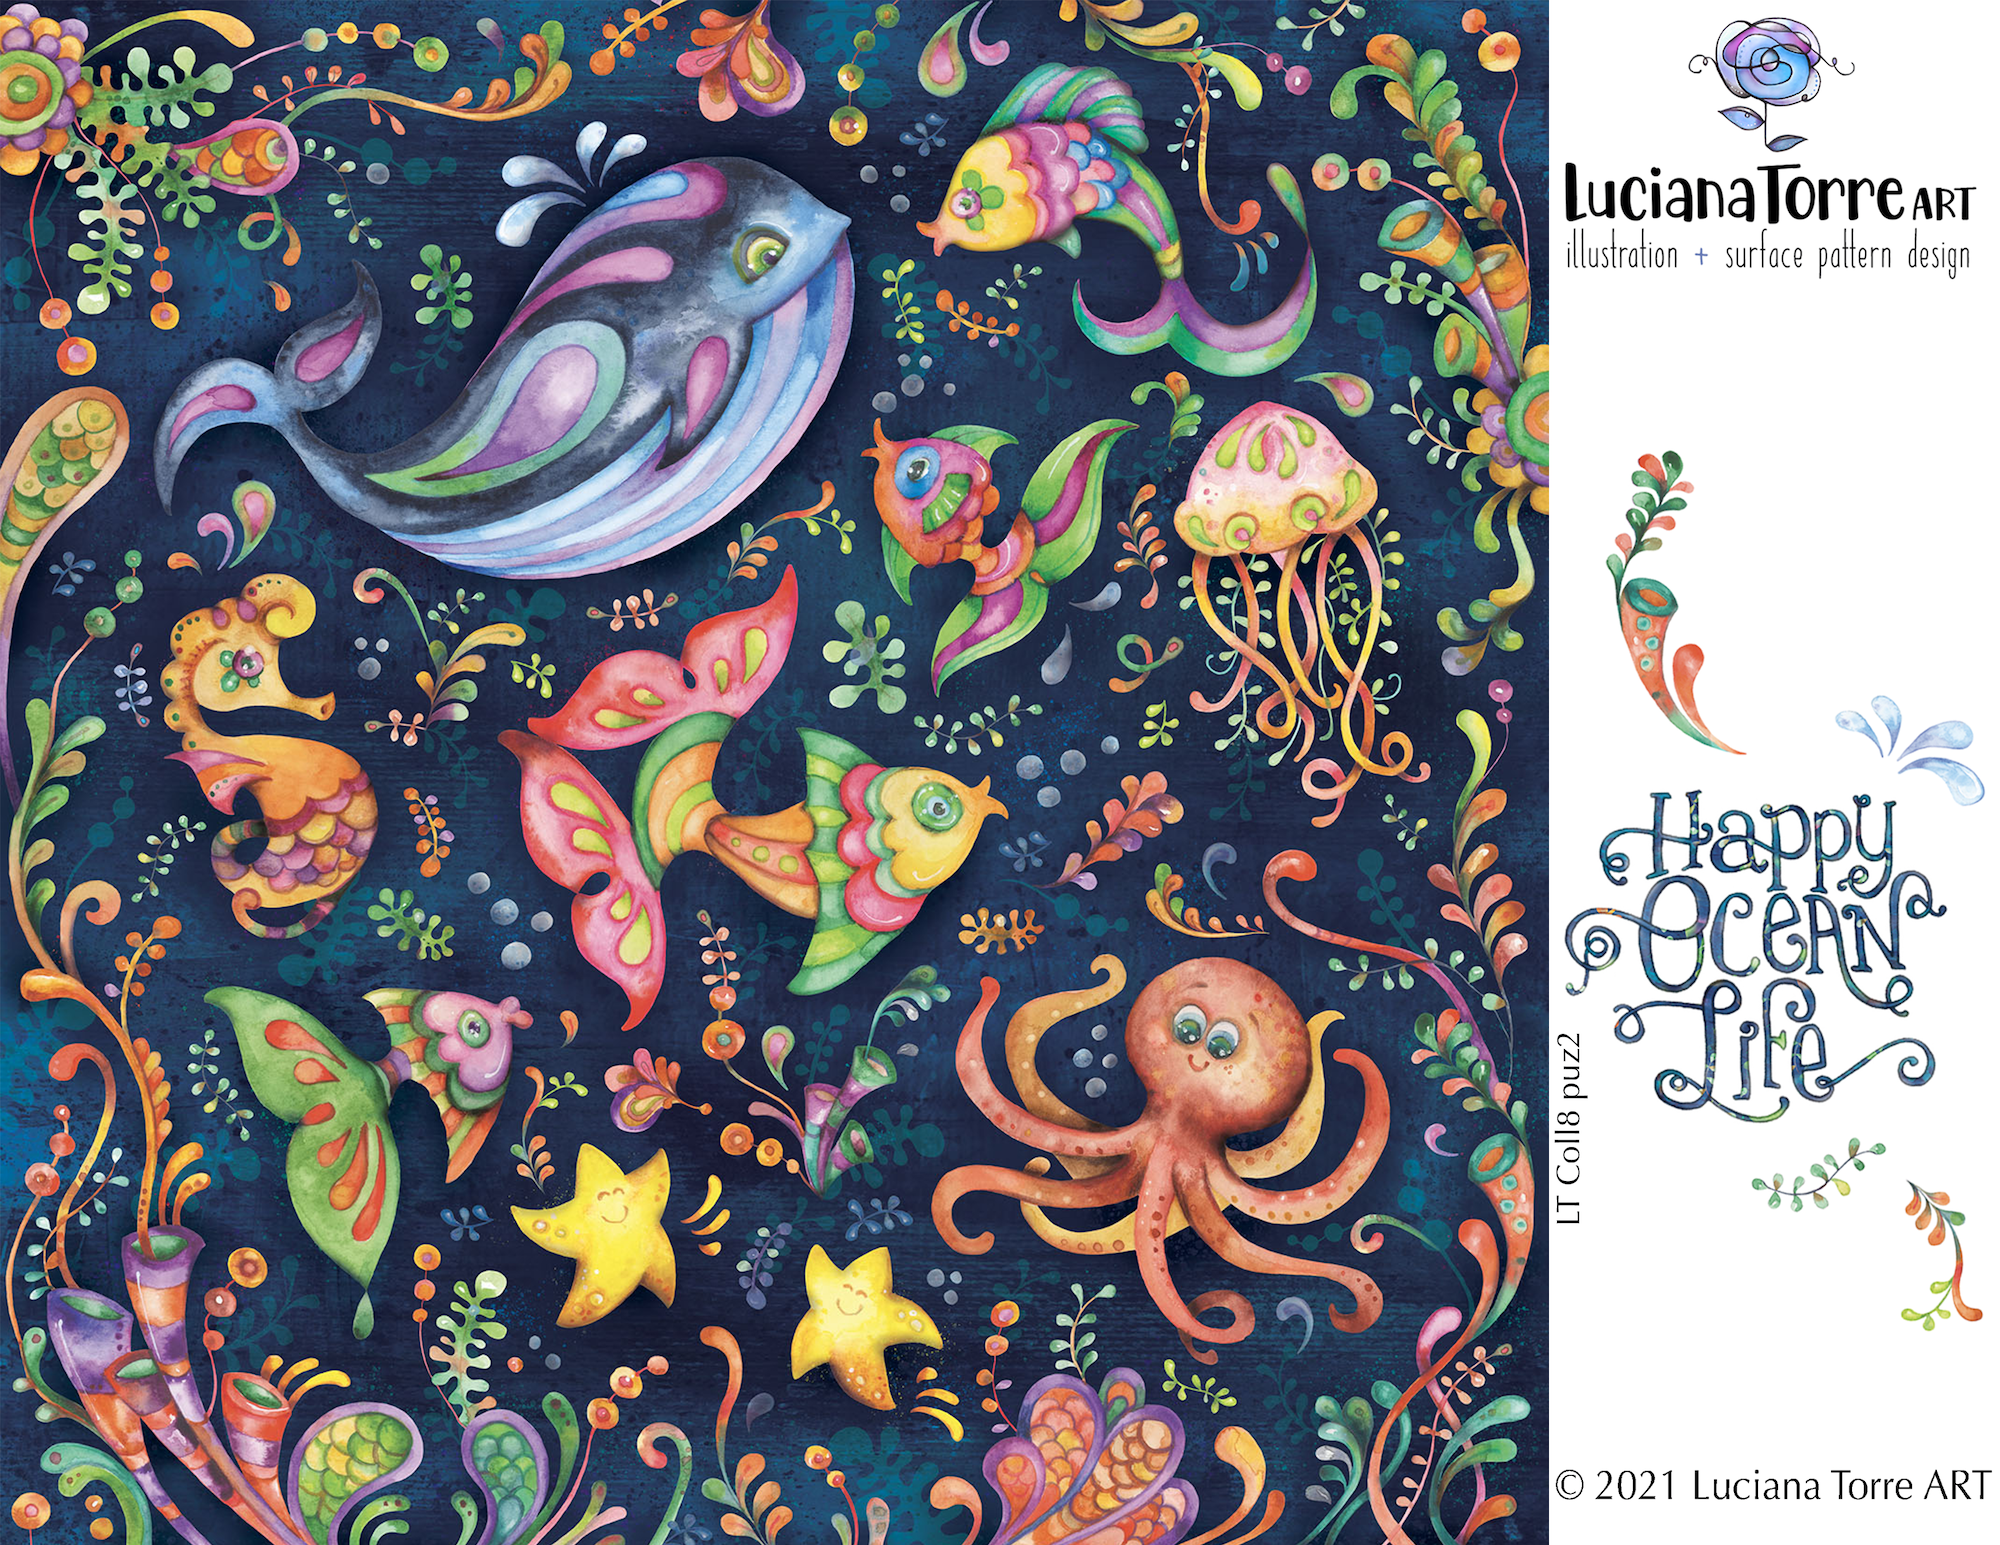 Luciana Torre Art illustrations and patterns for licensing